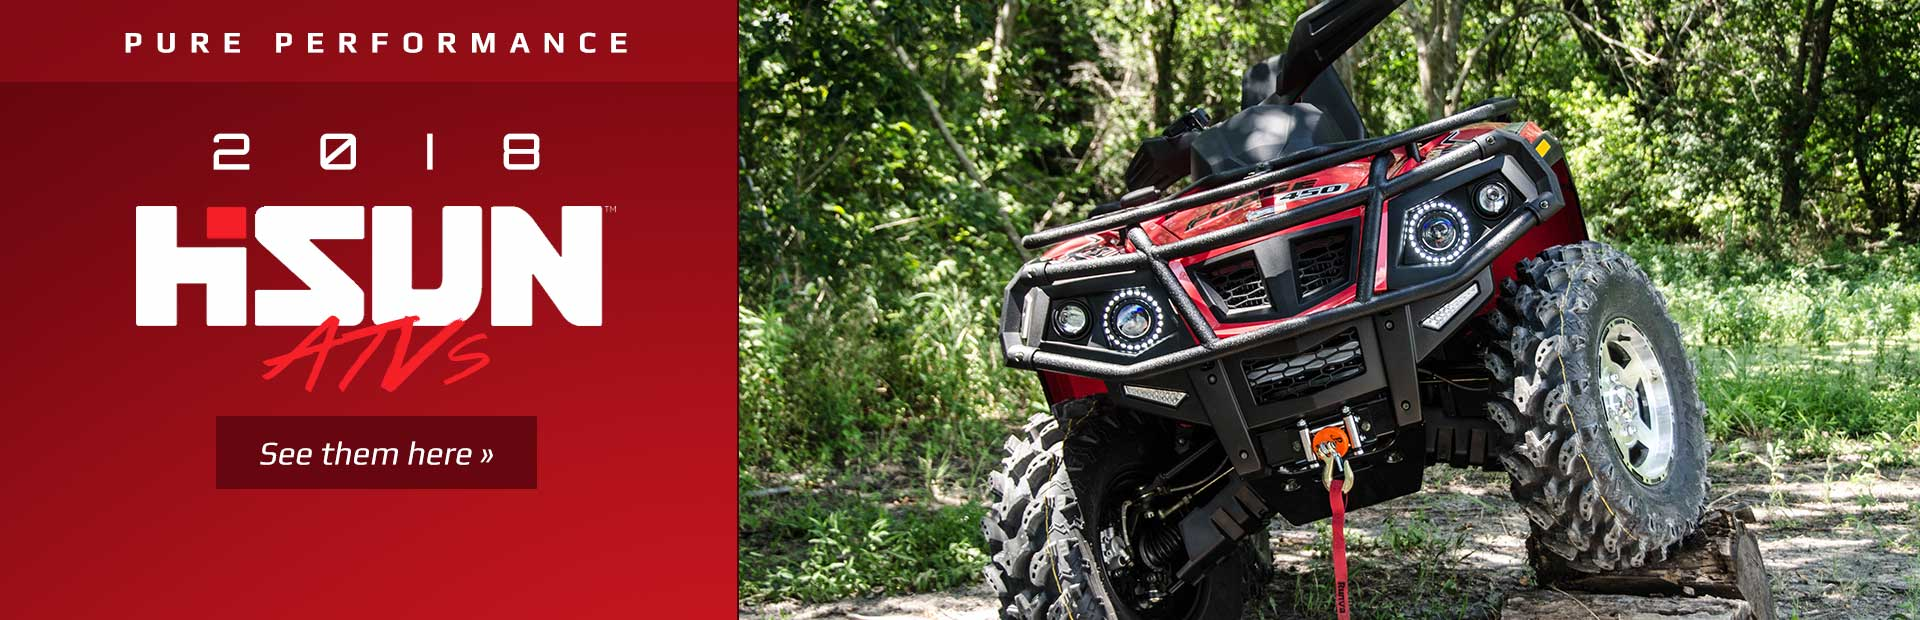 2018 Hisun ATVs: Click here to view the models.